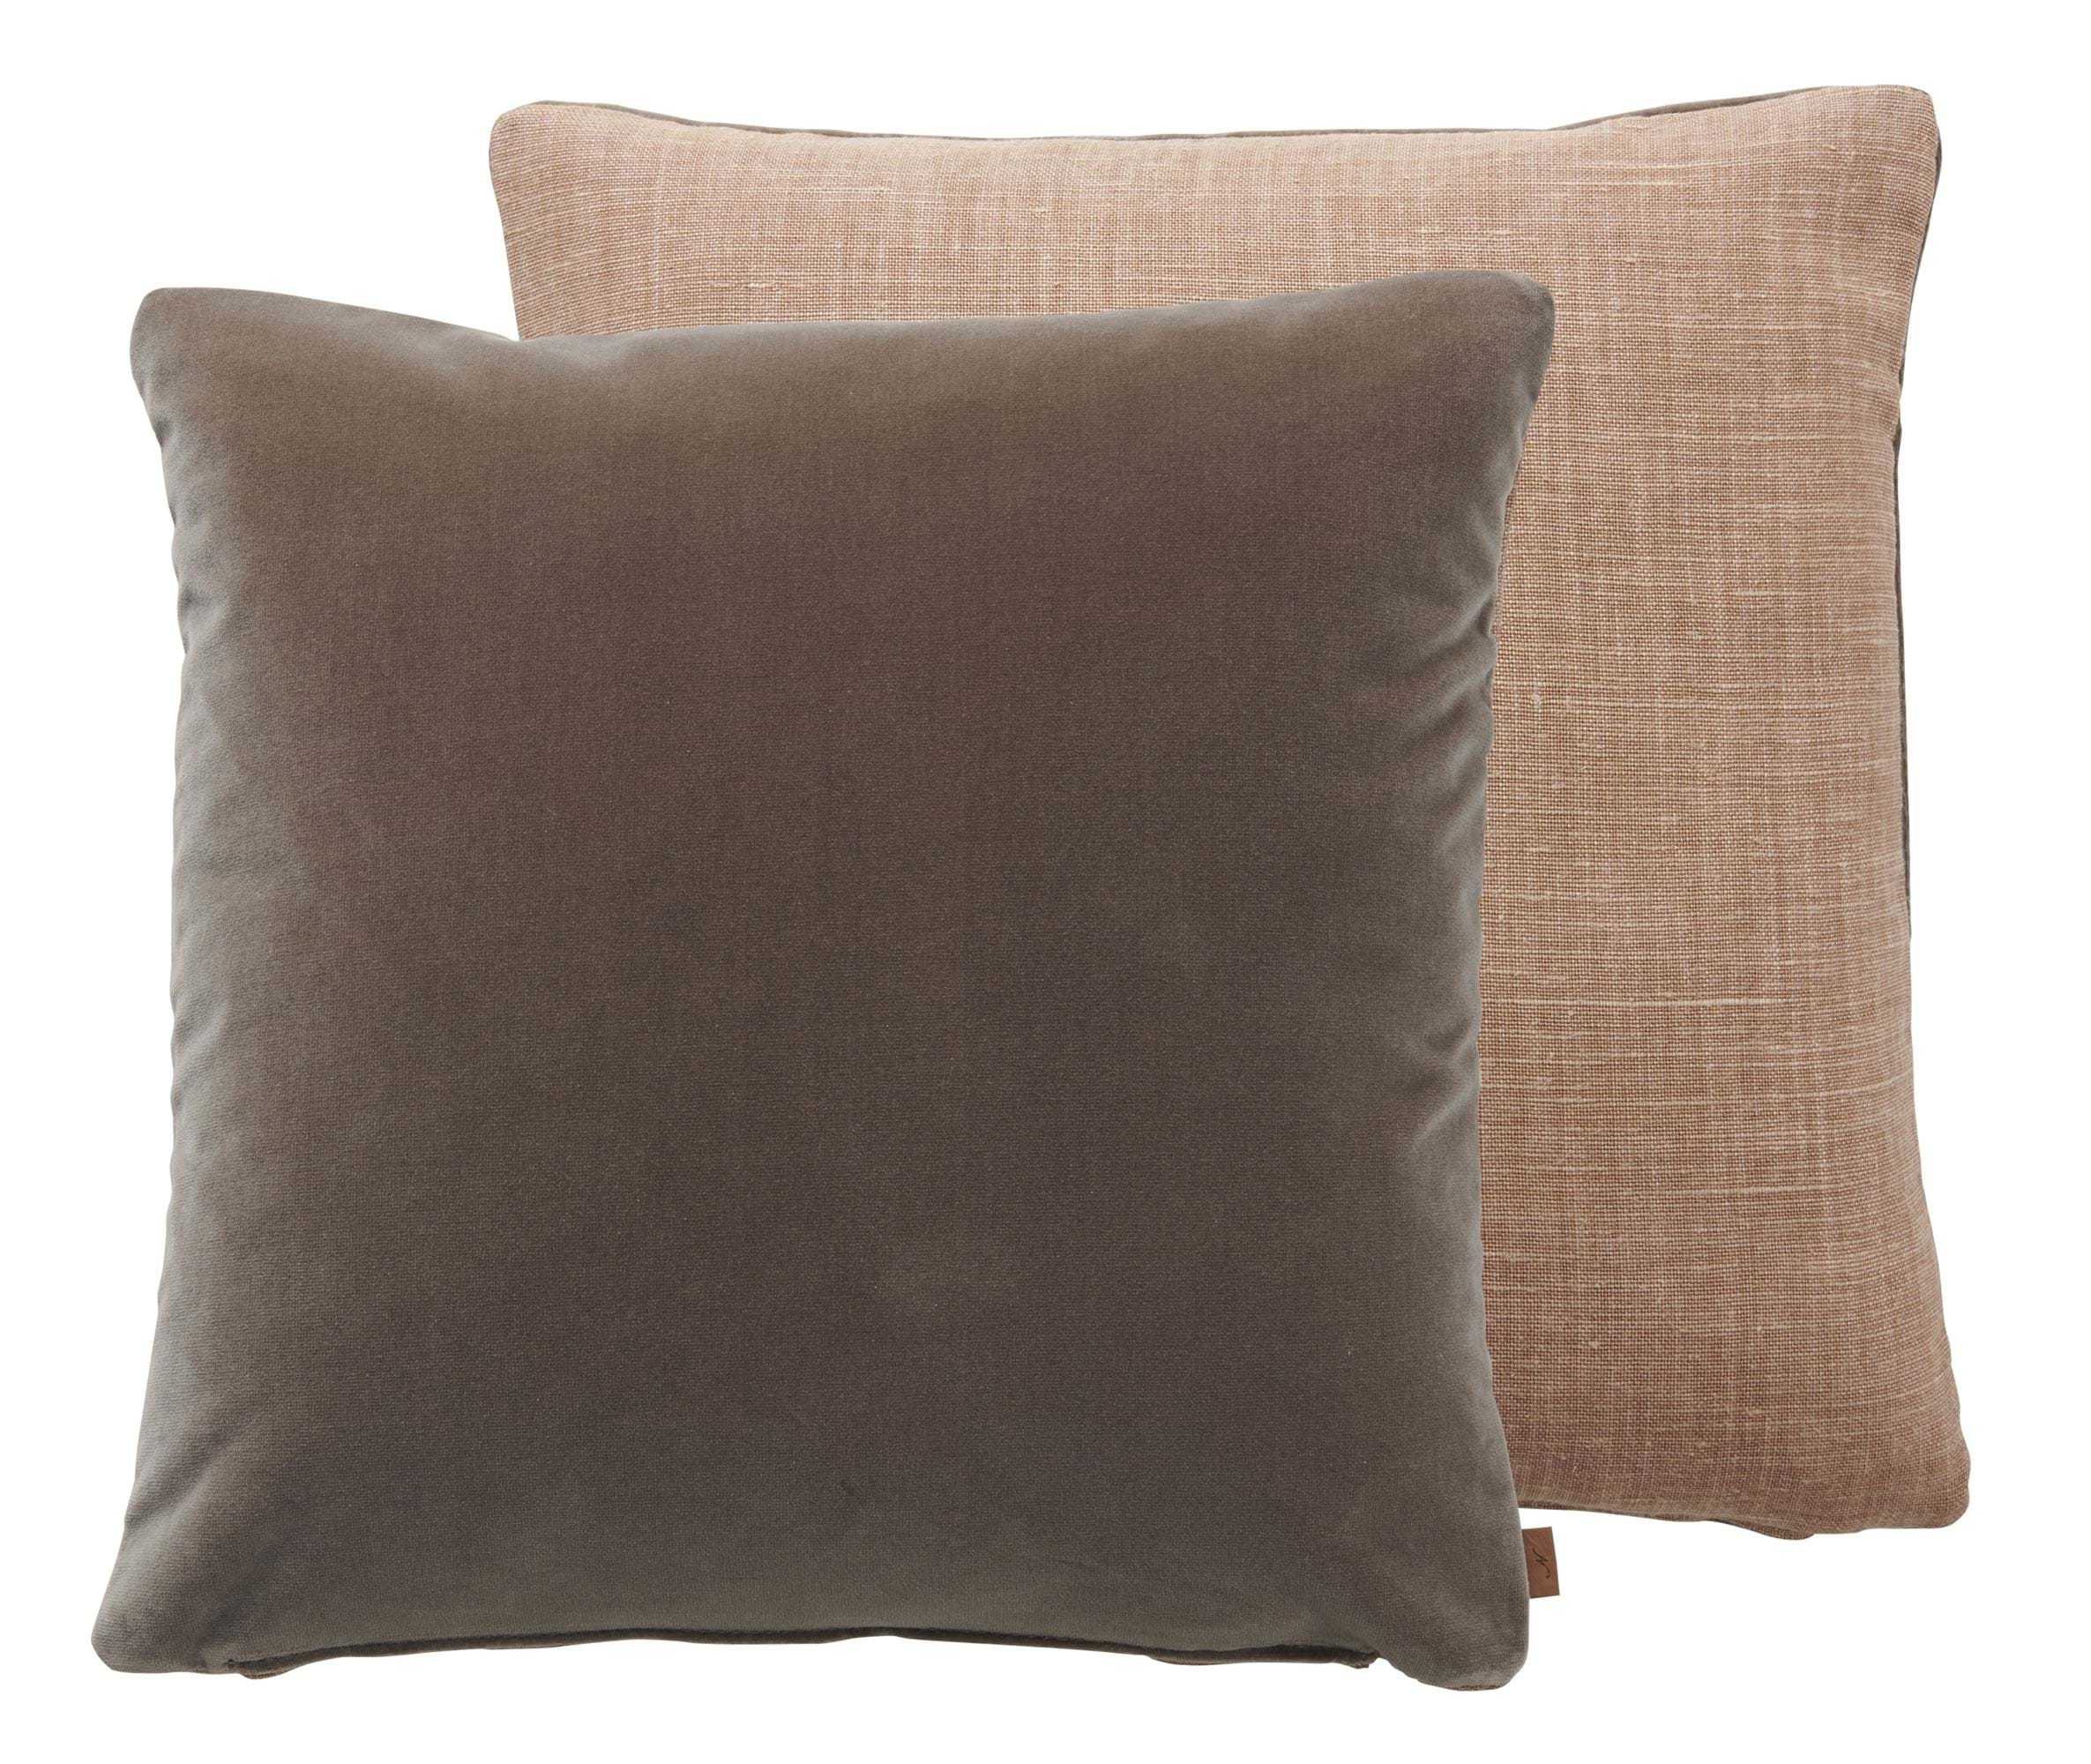 Delilah Scatter Cushion 45x45cm, Harry Apricot & Isla Otter